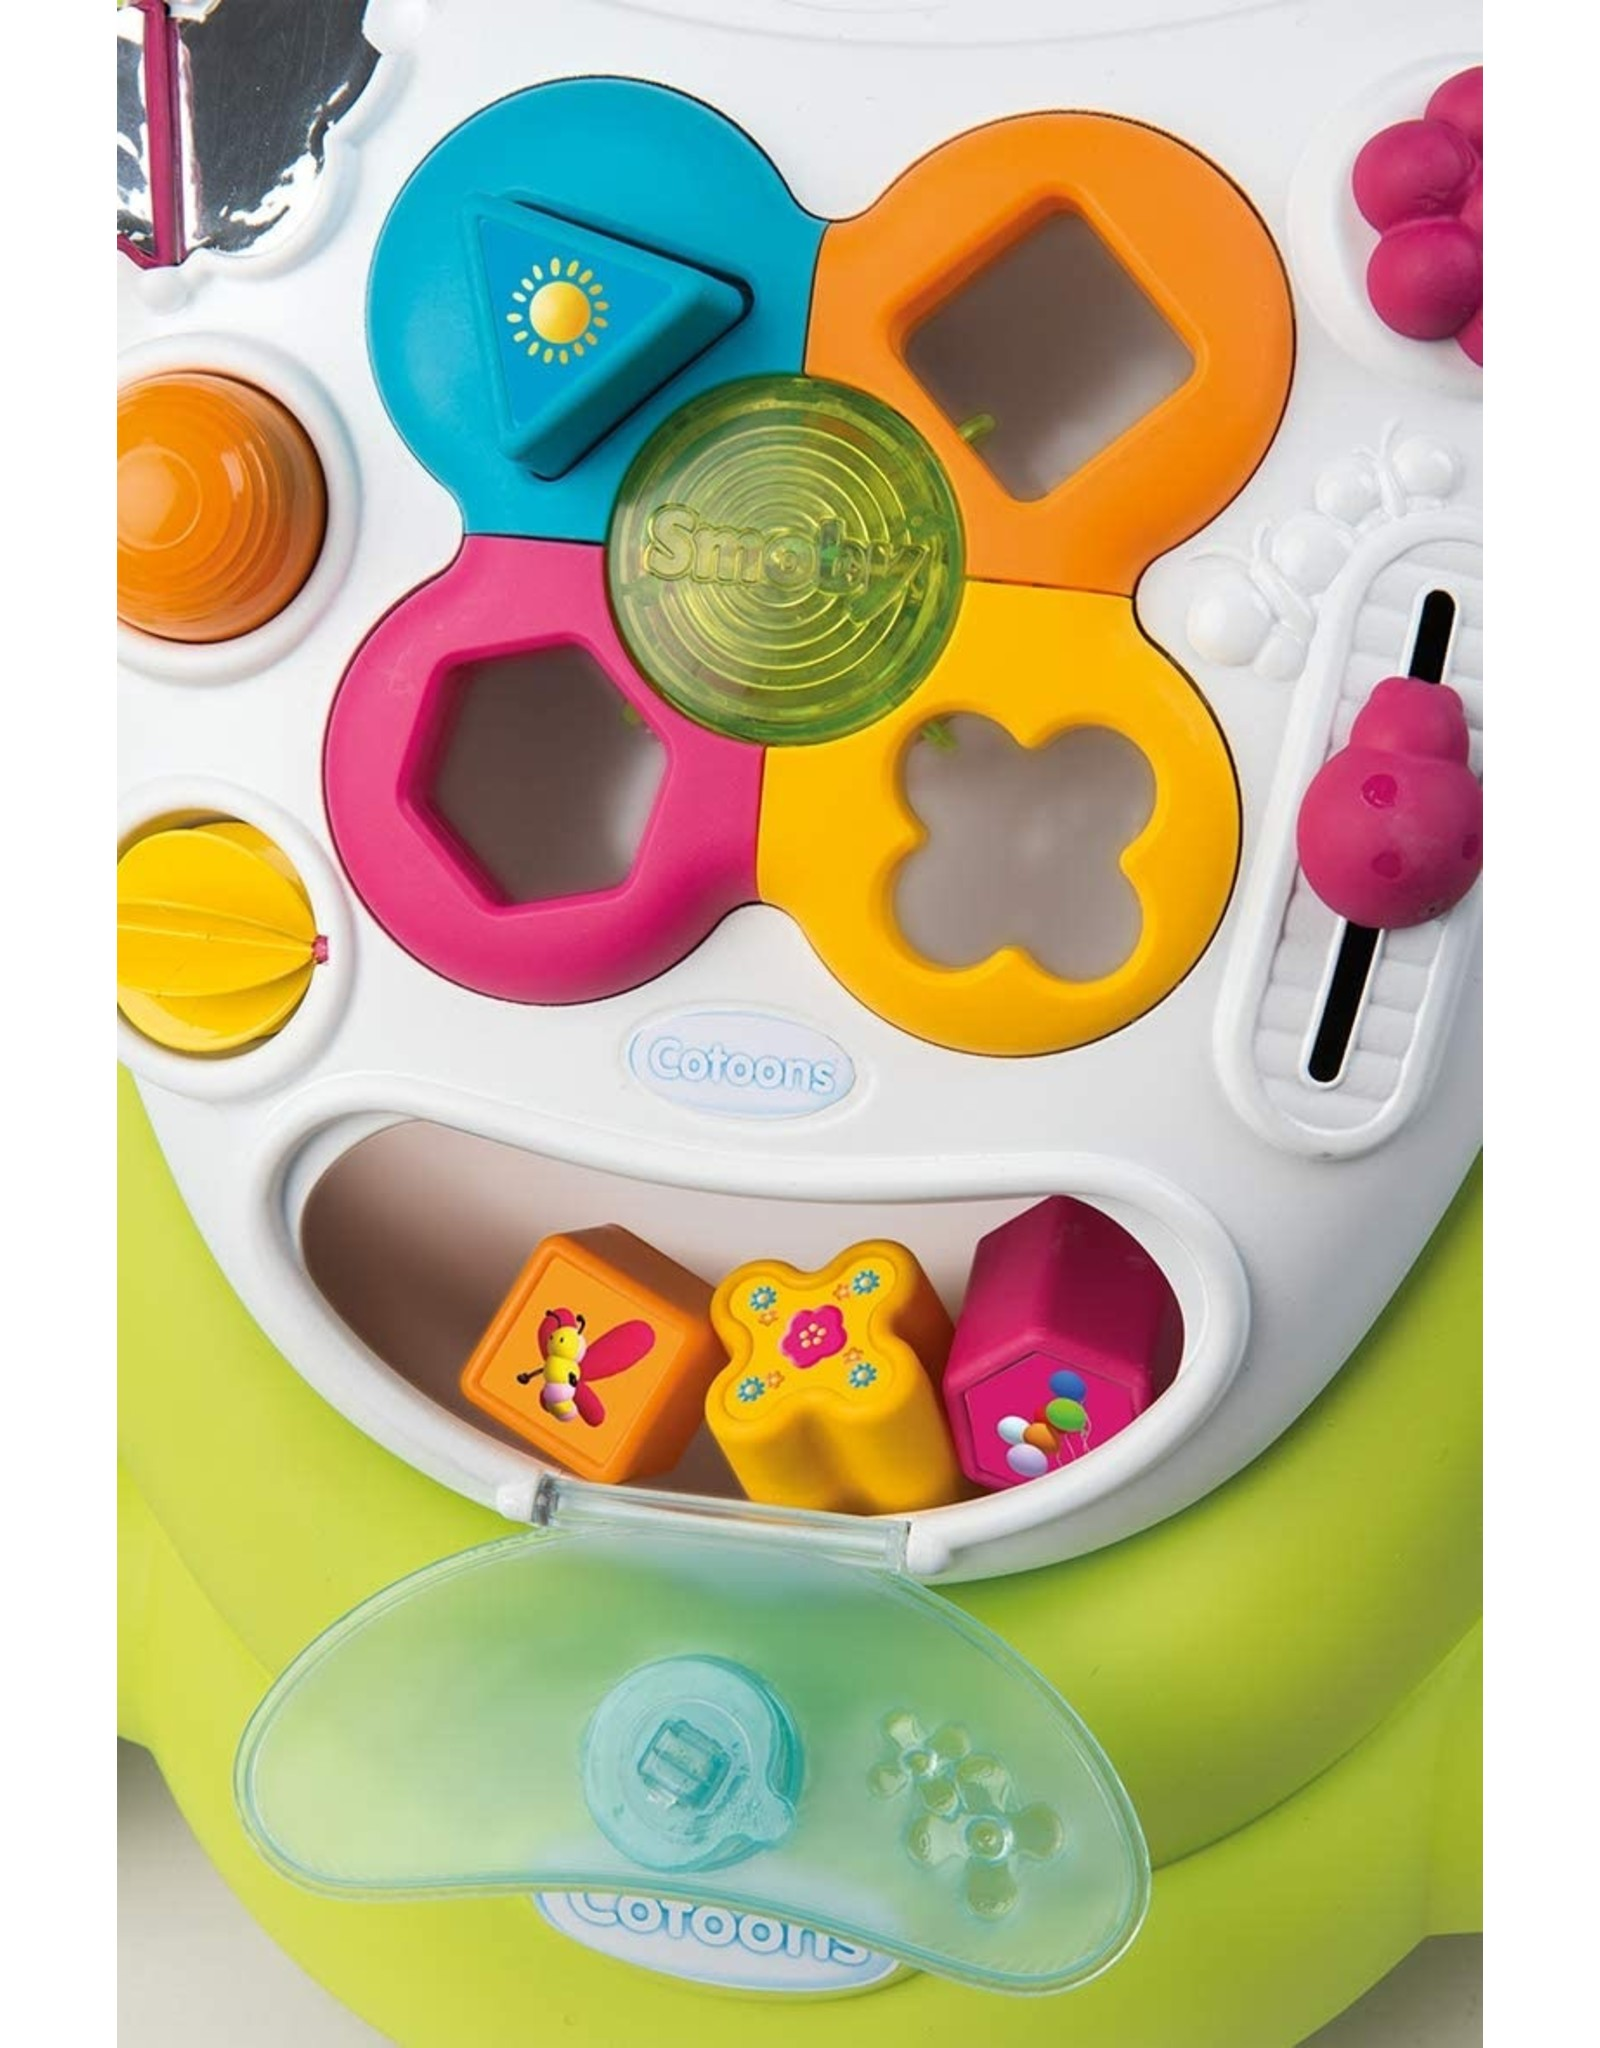 Smoby Smoby Cotoons baby walker 110428